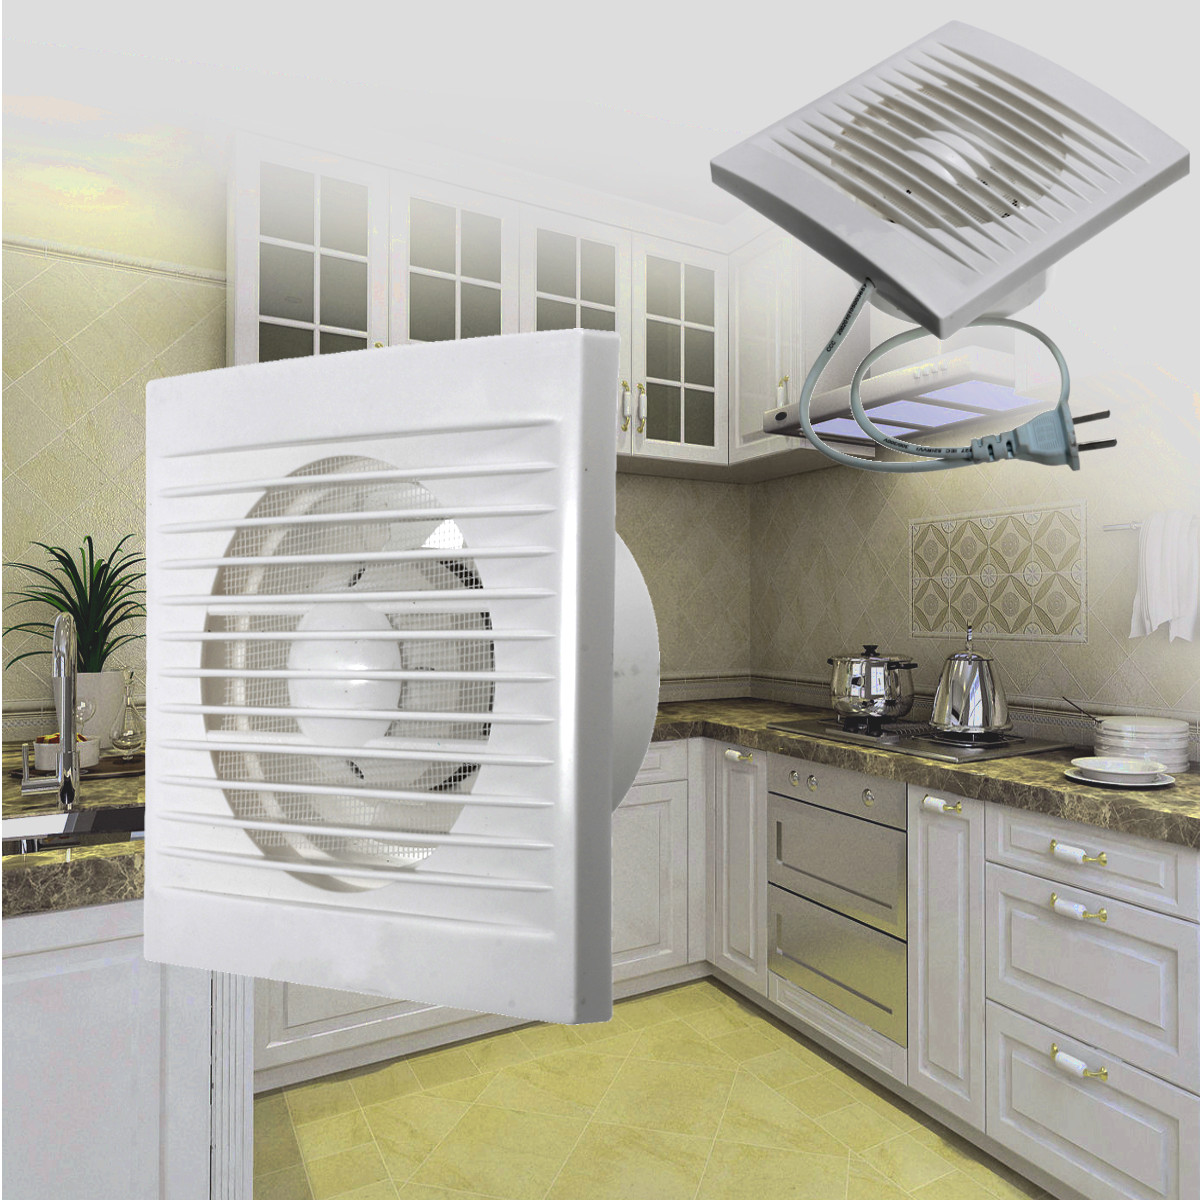 Bathroom extractor fan prices - Ventilation Extractor Exhaust Fan Blower Window Wall Kitchen Bathroom Toilet China Mainland